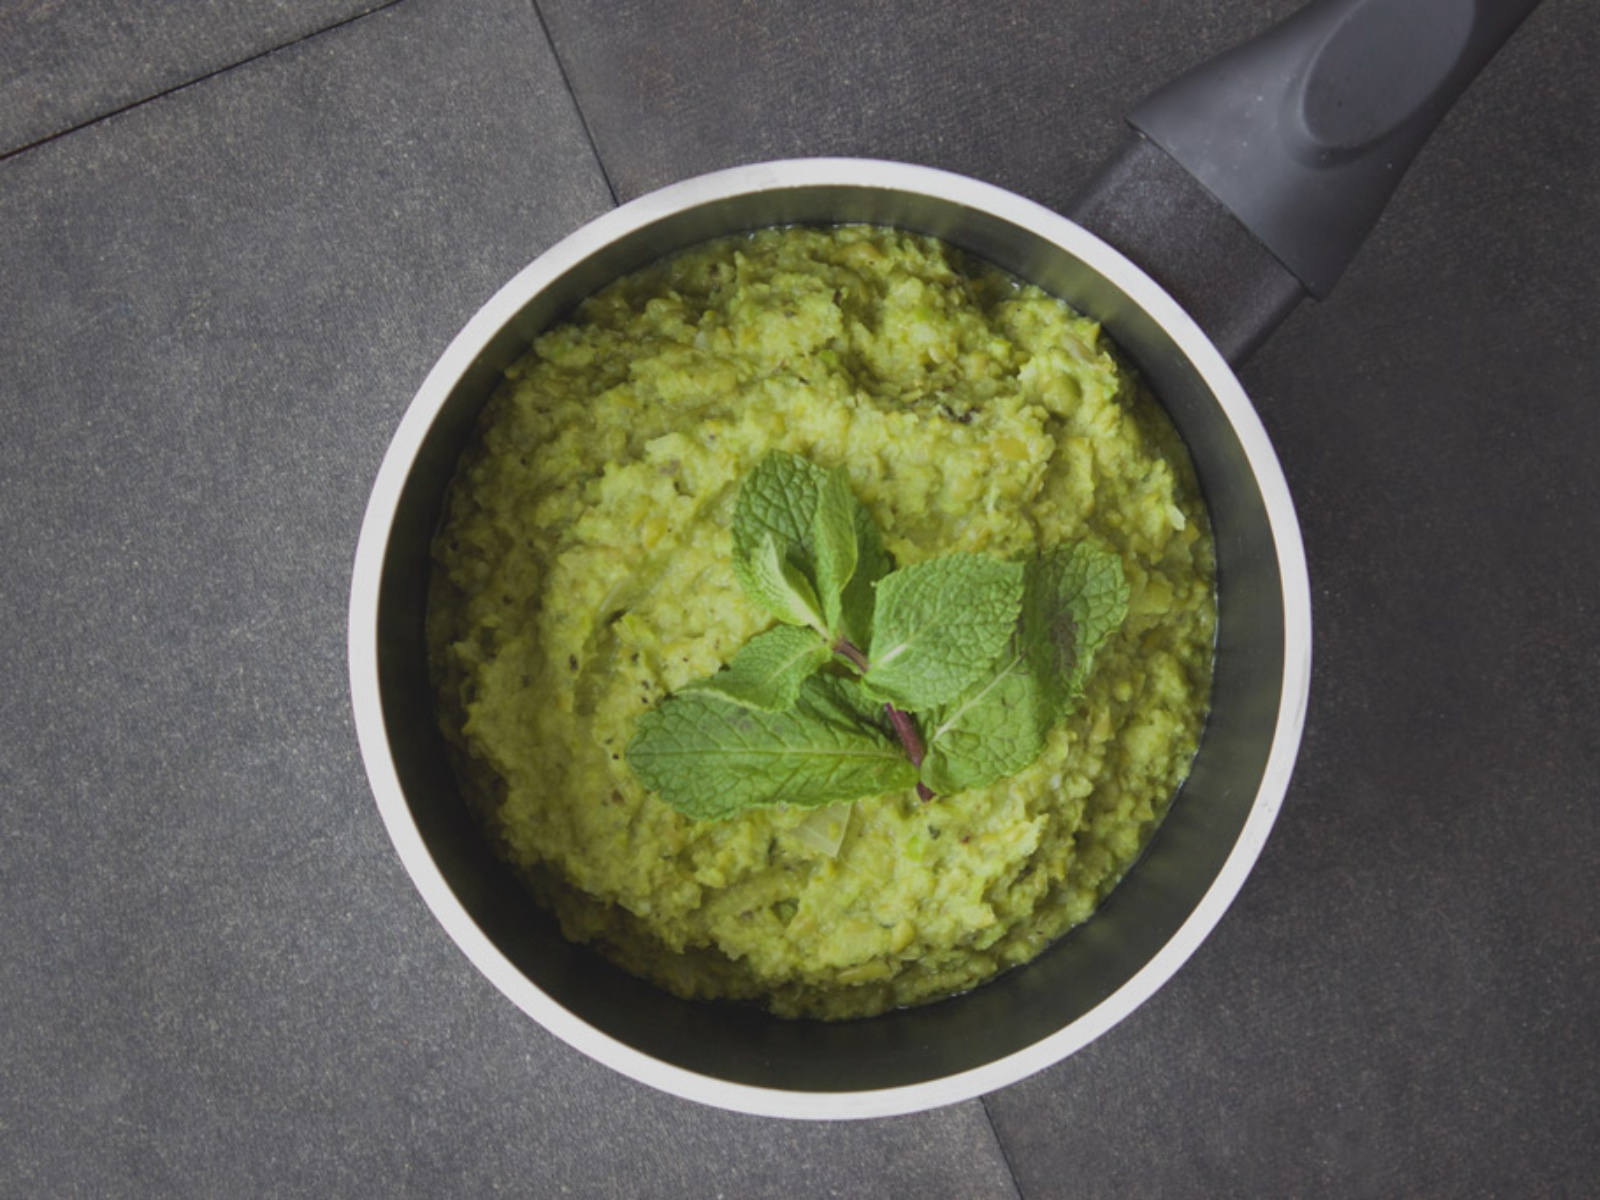 Minty Mashed Peas